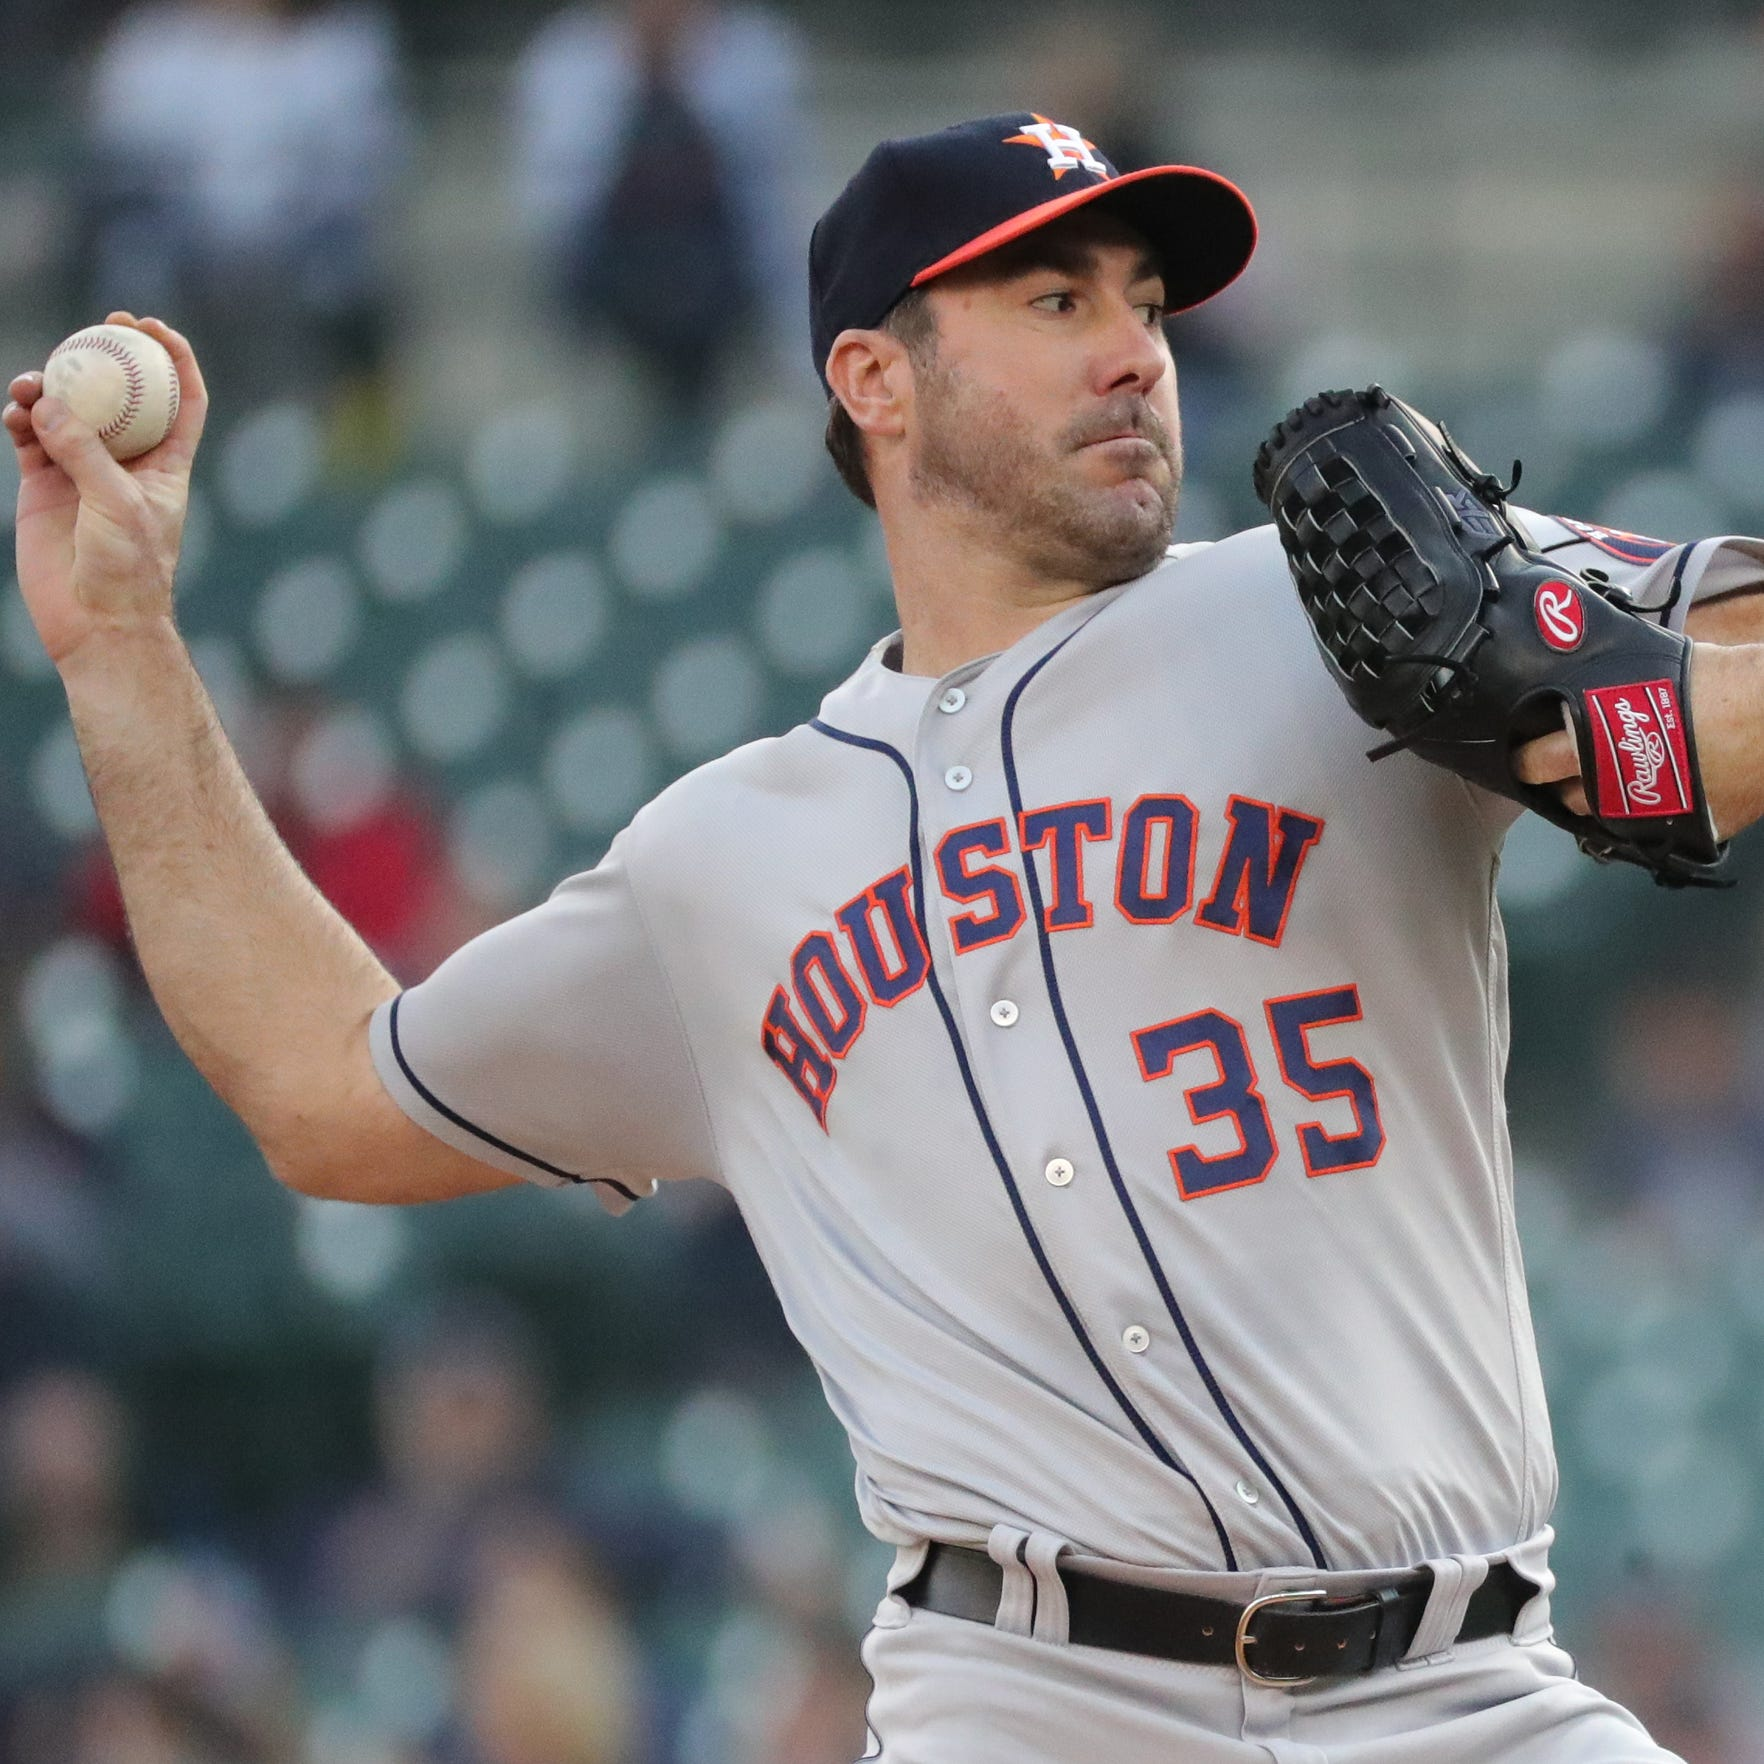 Detroit Tigers observations: Justin Verlander dominant, Candelario sent down to Triple-A